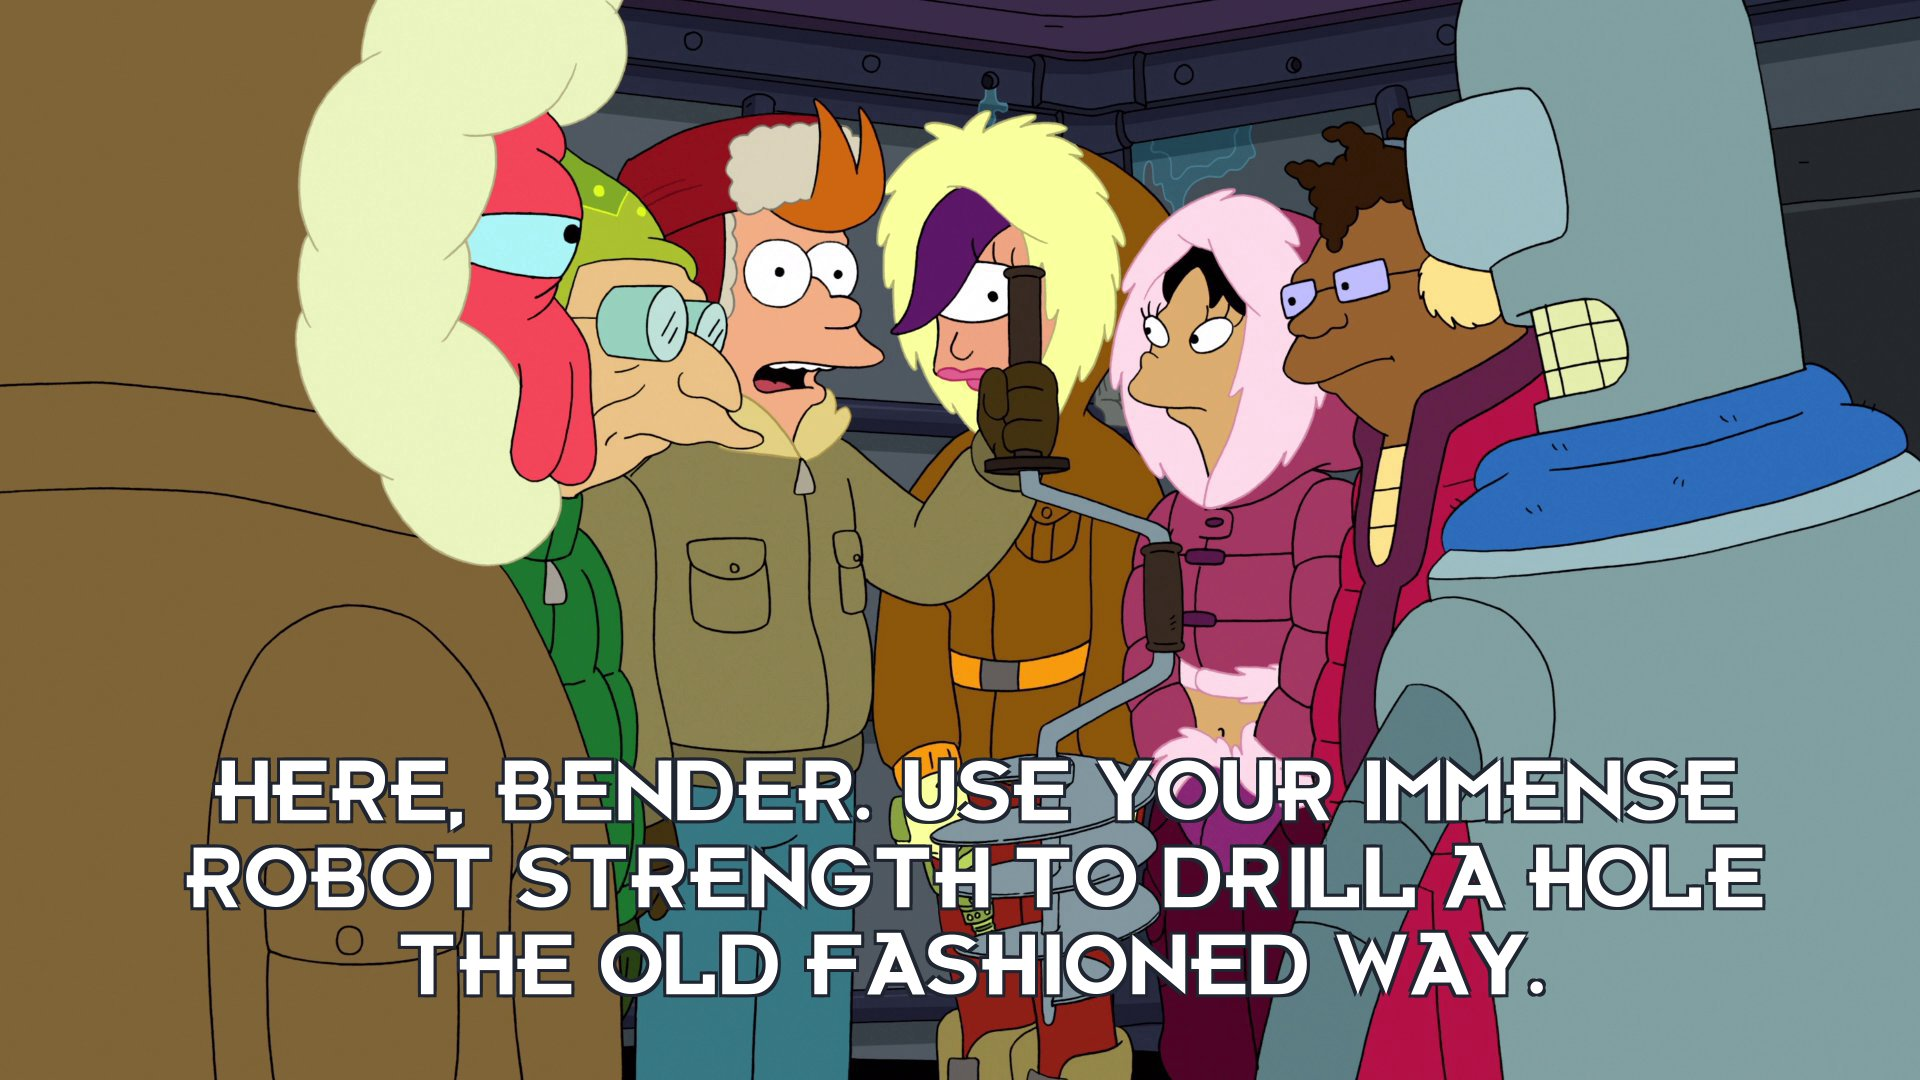 Philip J Fry: Here, Bender. Use your immense robot strength to drill a hole the old fashioned way.